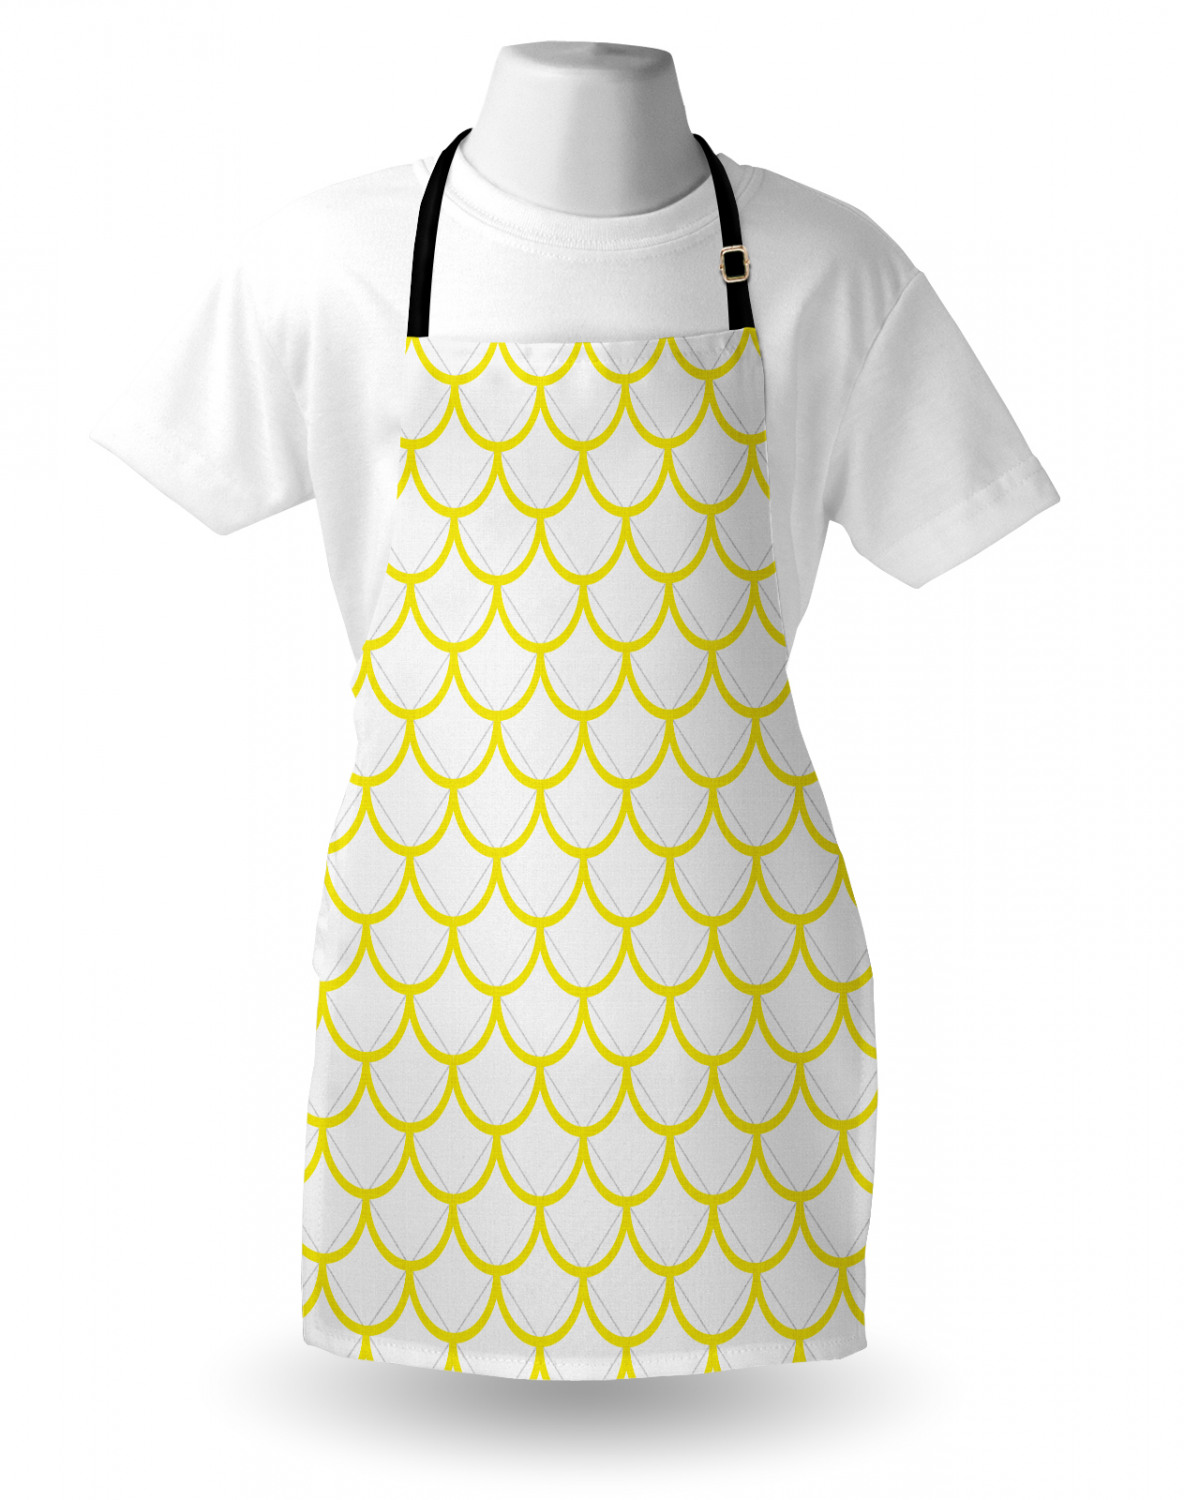 Ambesonne-Outdoor-Use-Apron-with-Adjustable-Neck-Strap-for-Gardening-and-Cooking miniatura 156